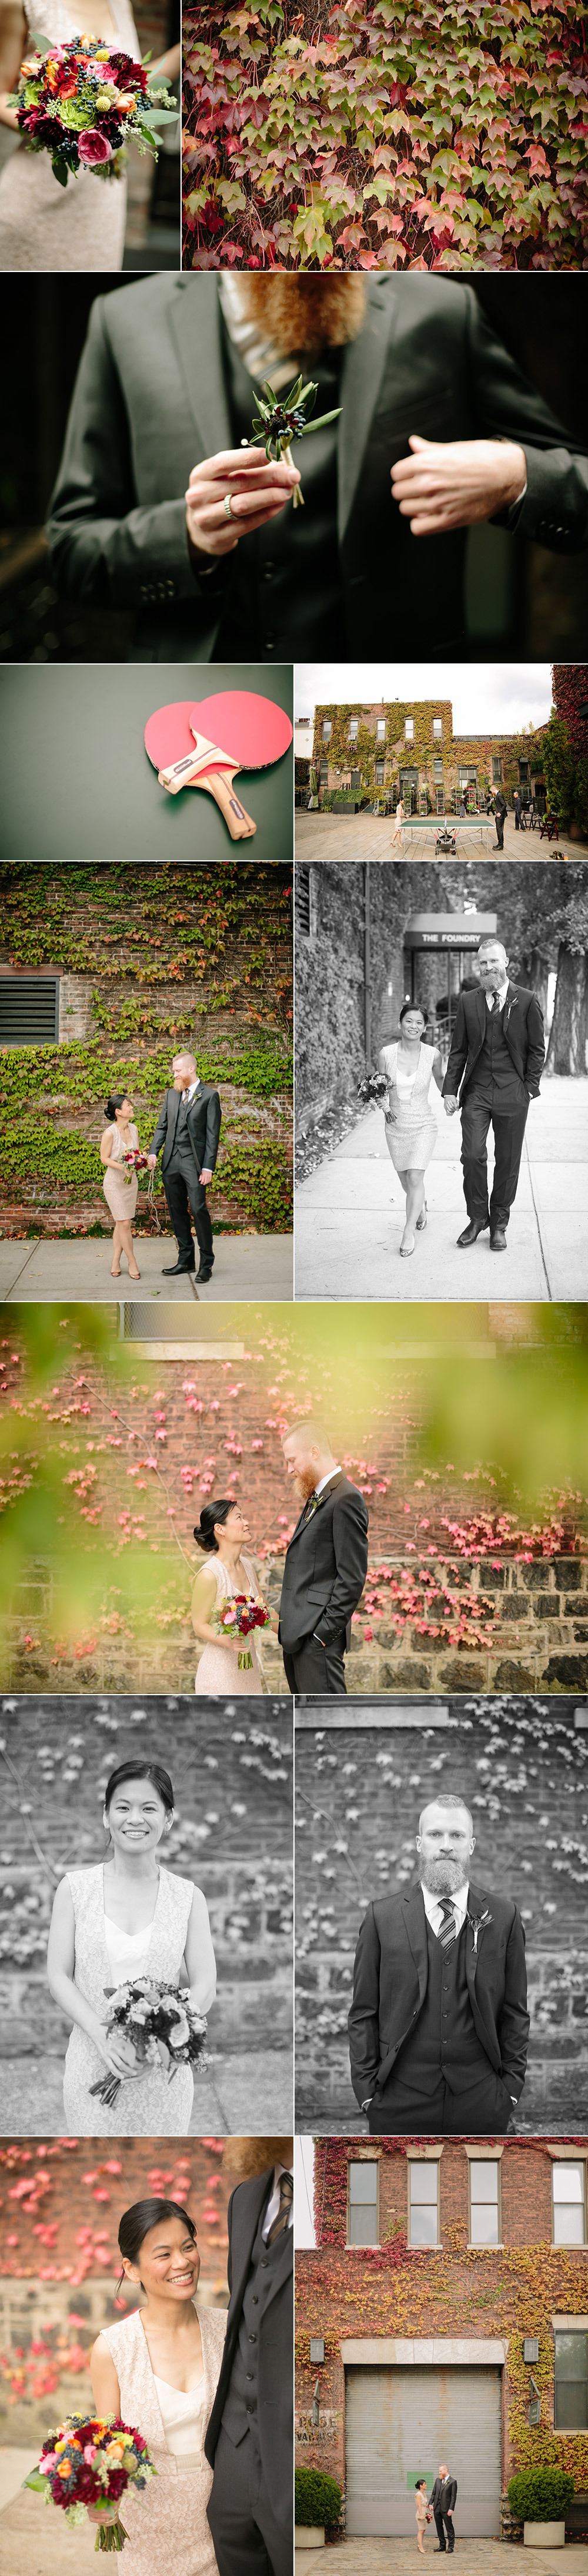 An Autumn wedding at the Foundry in Long Island City, NYC.